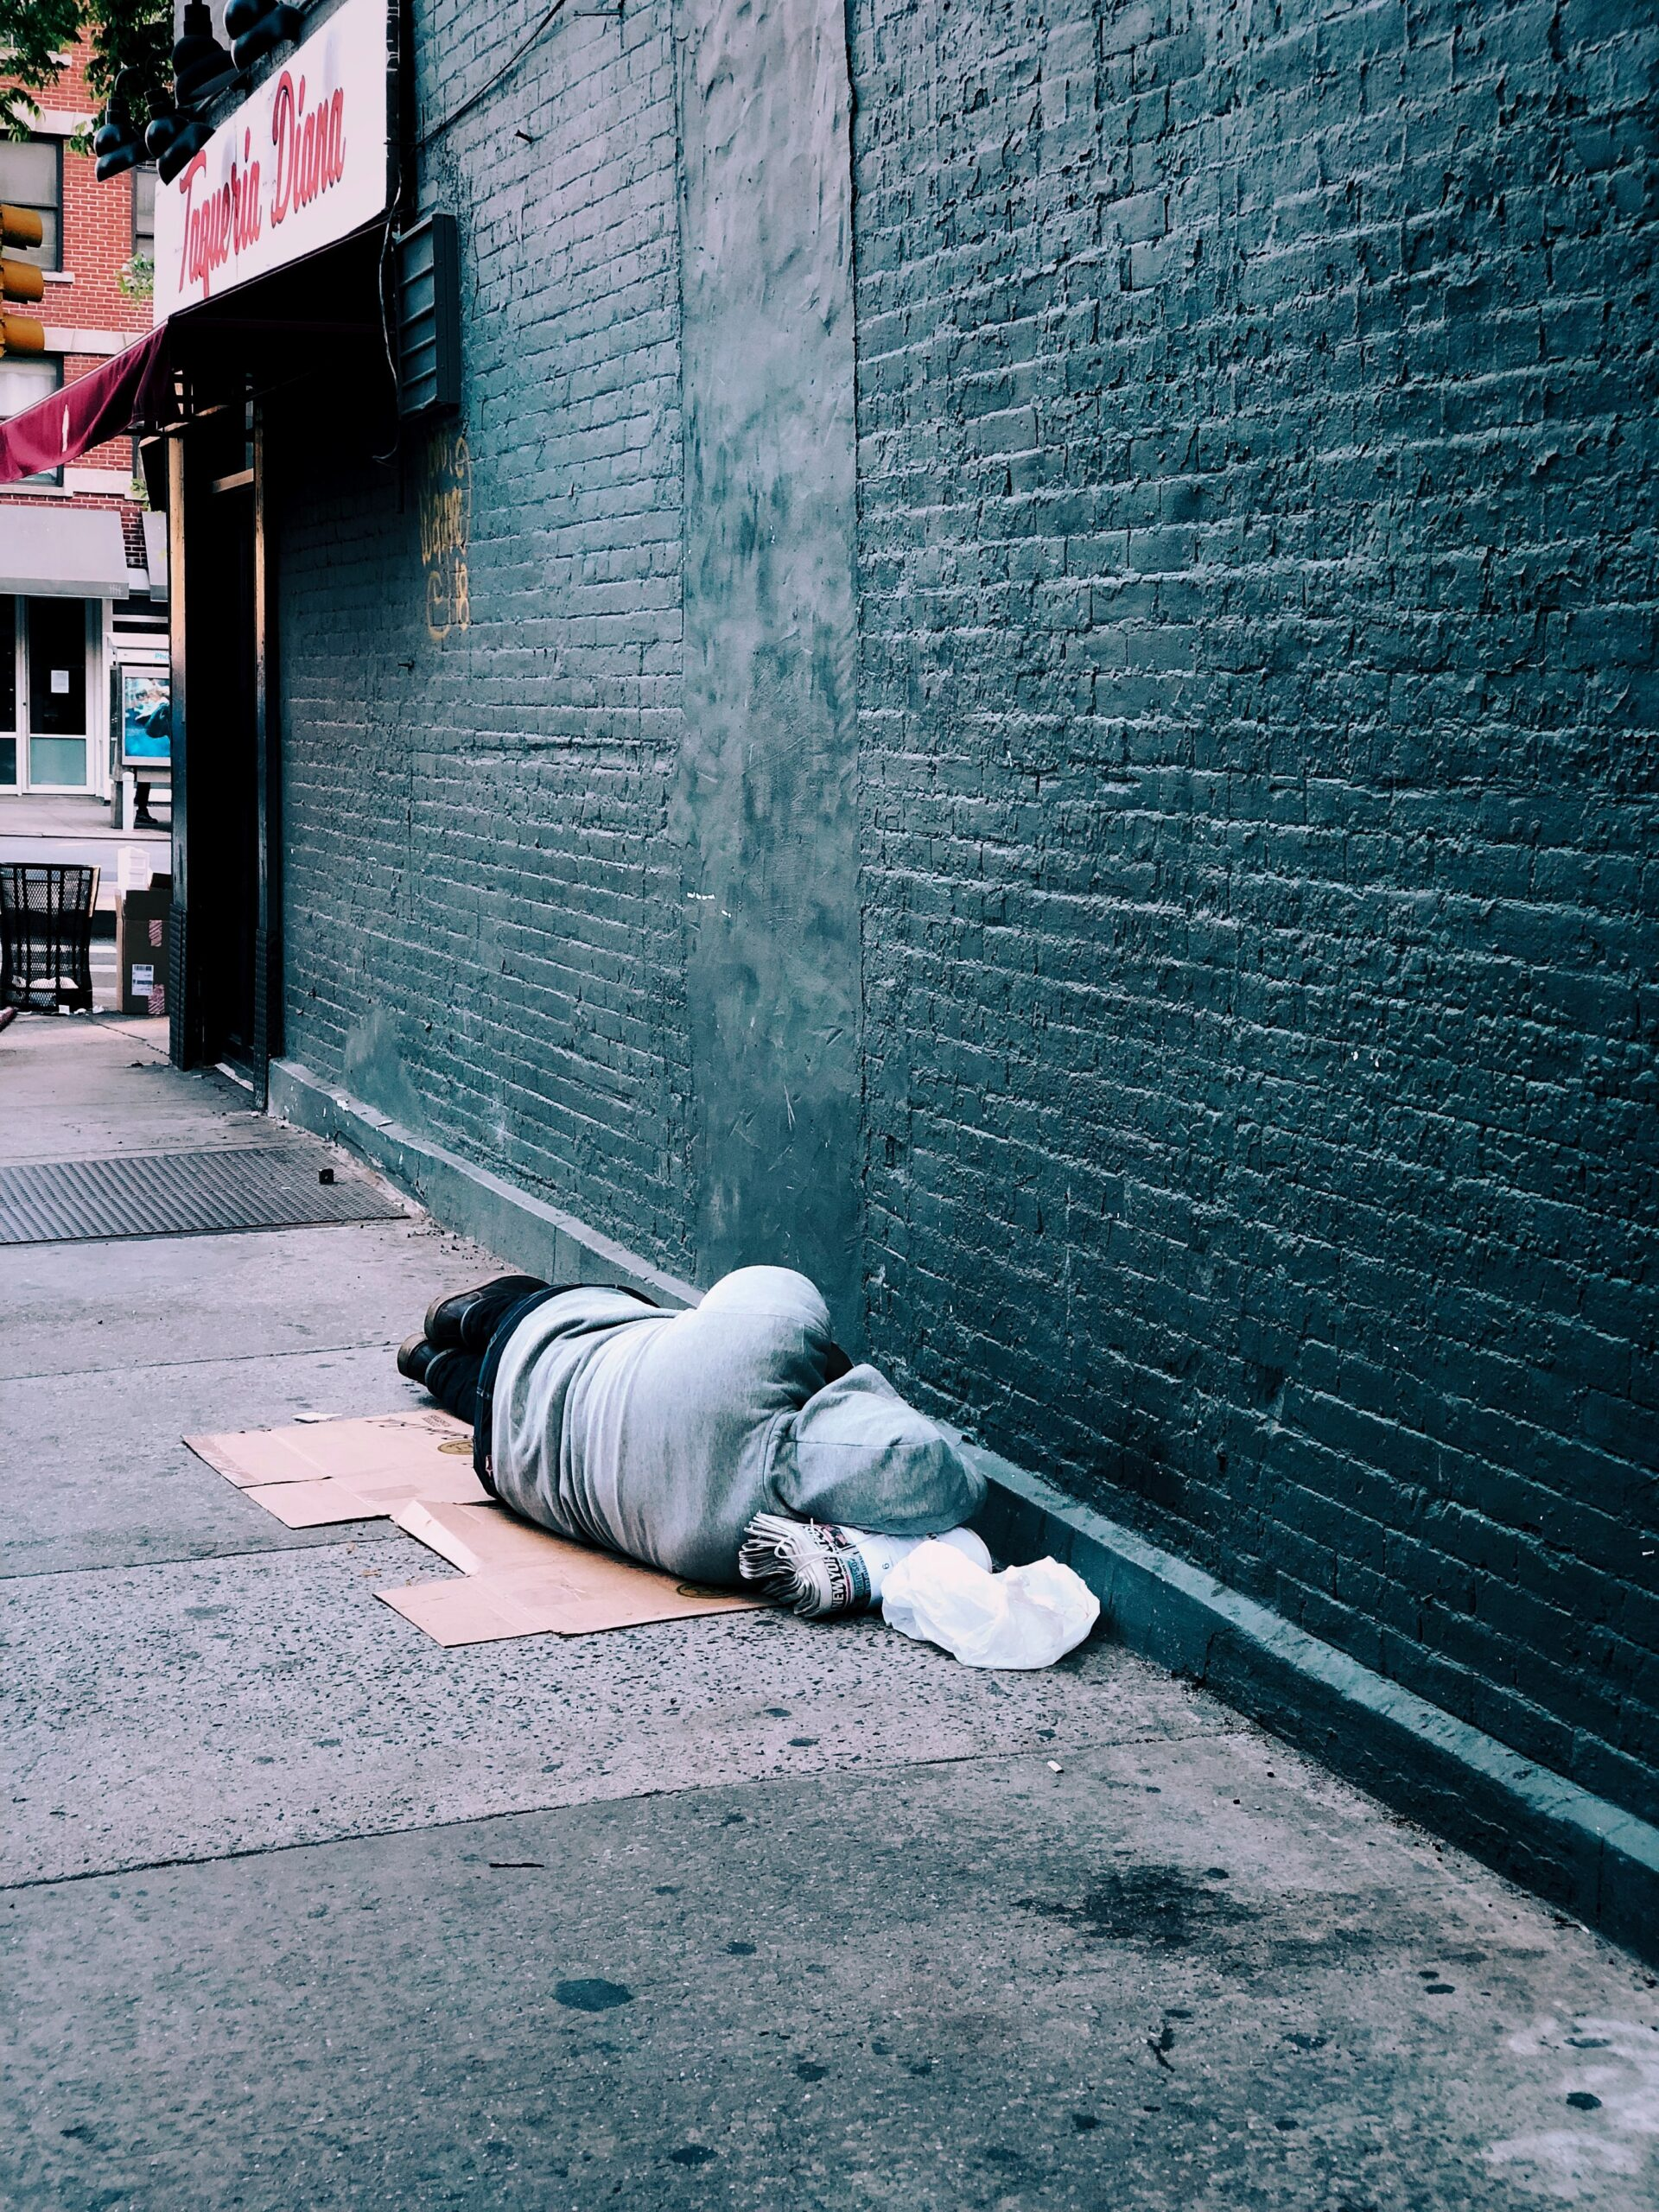 I'm going to be homeless and thinking about dying (7 Tips)